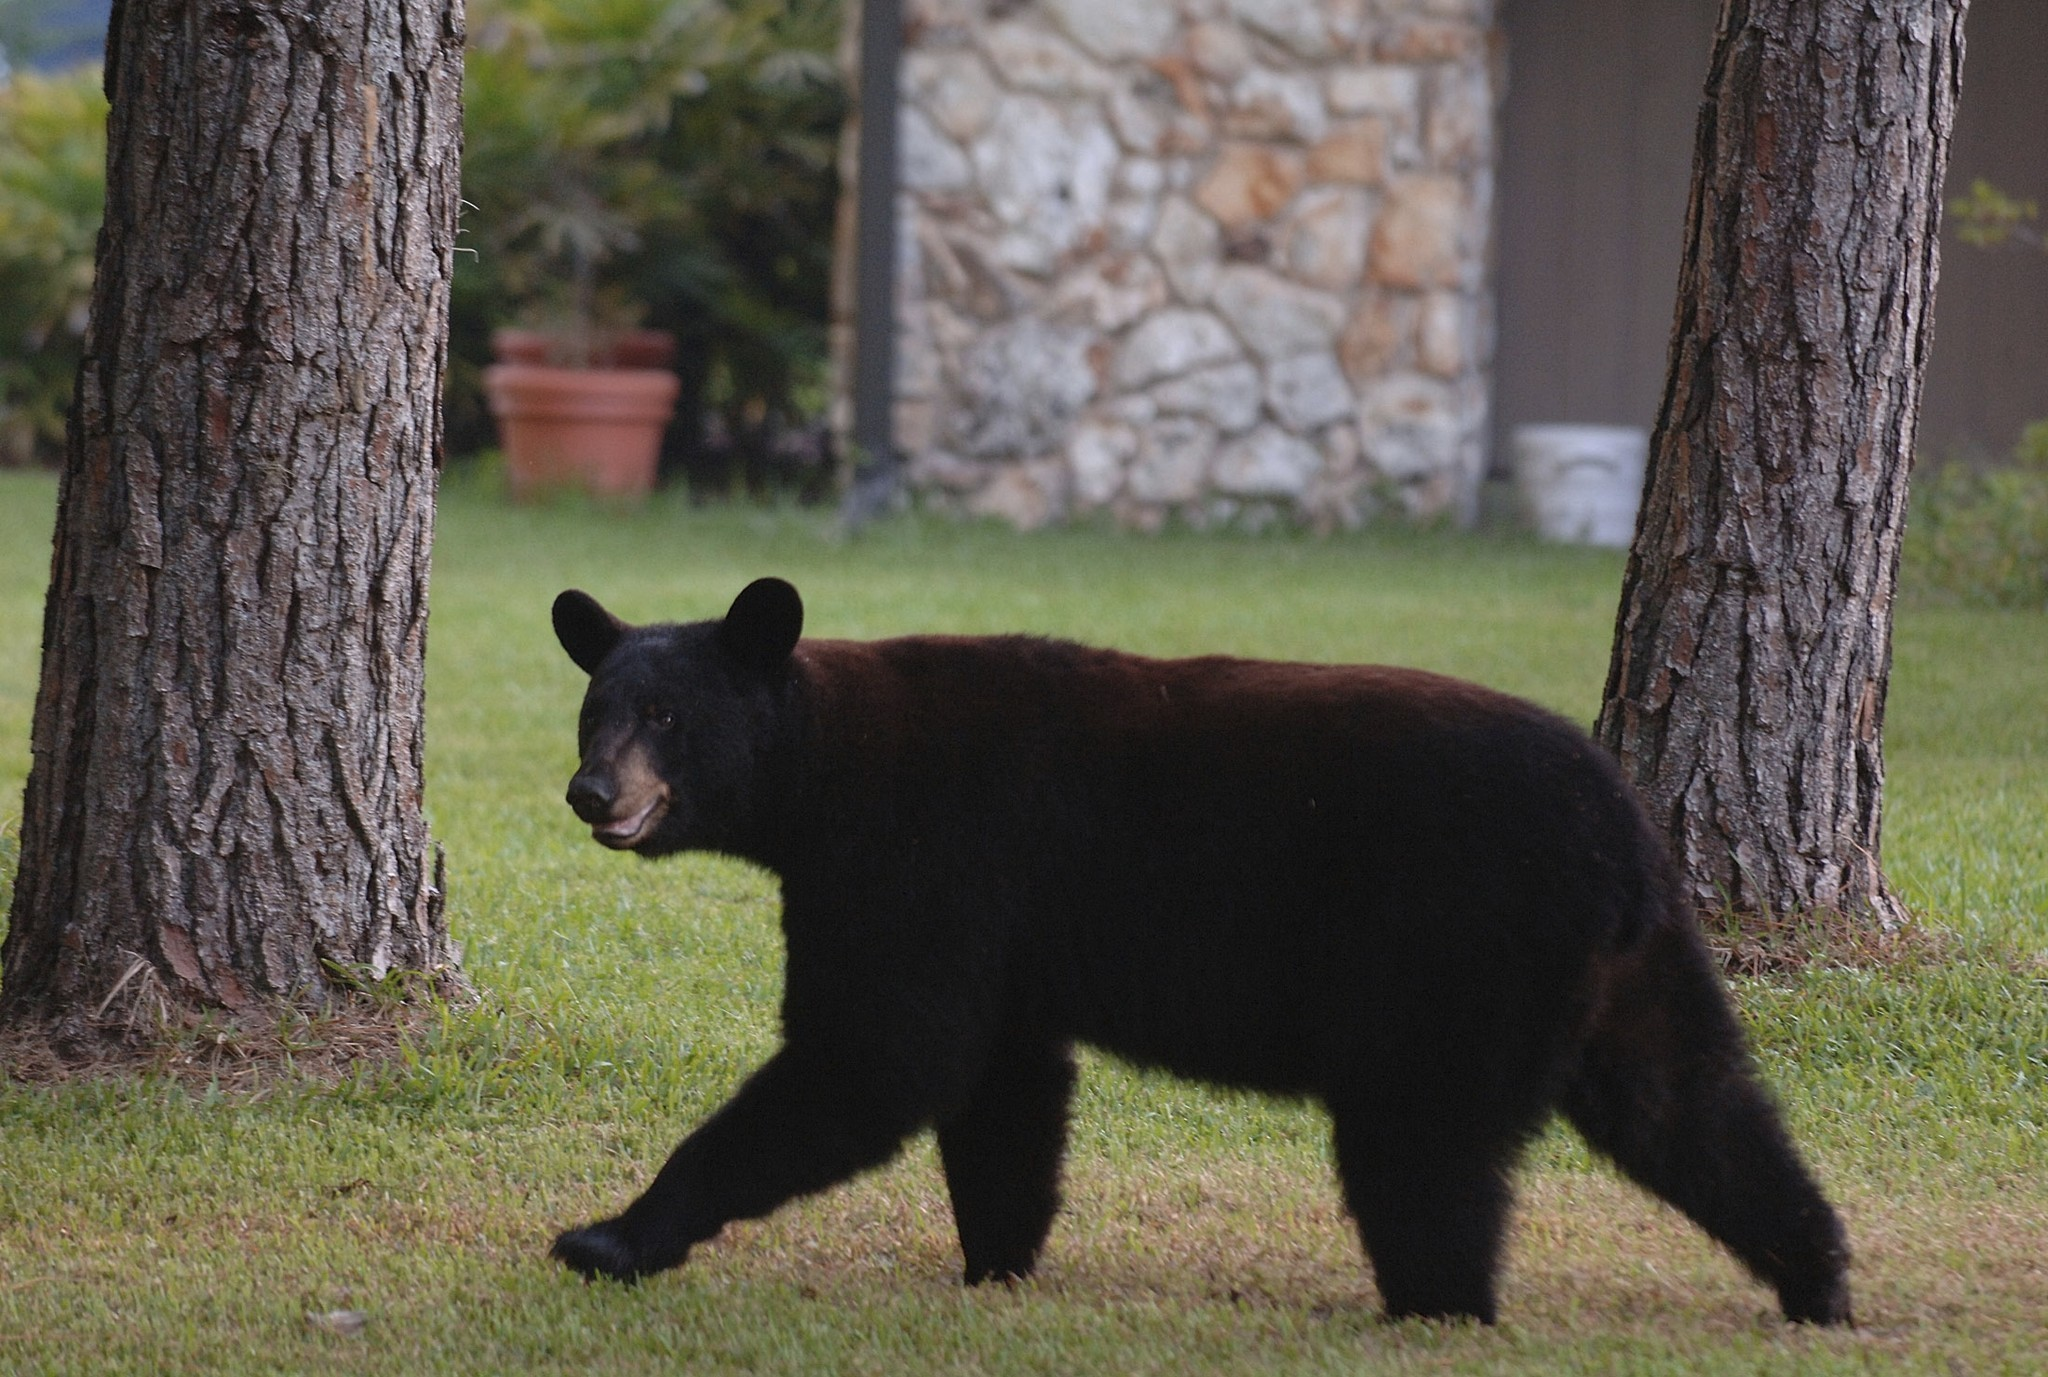 Pictures Orlandoarea bear sightings  Orlando Sentinel